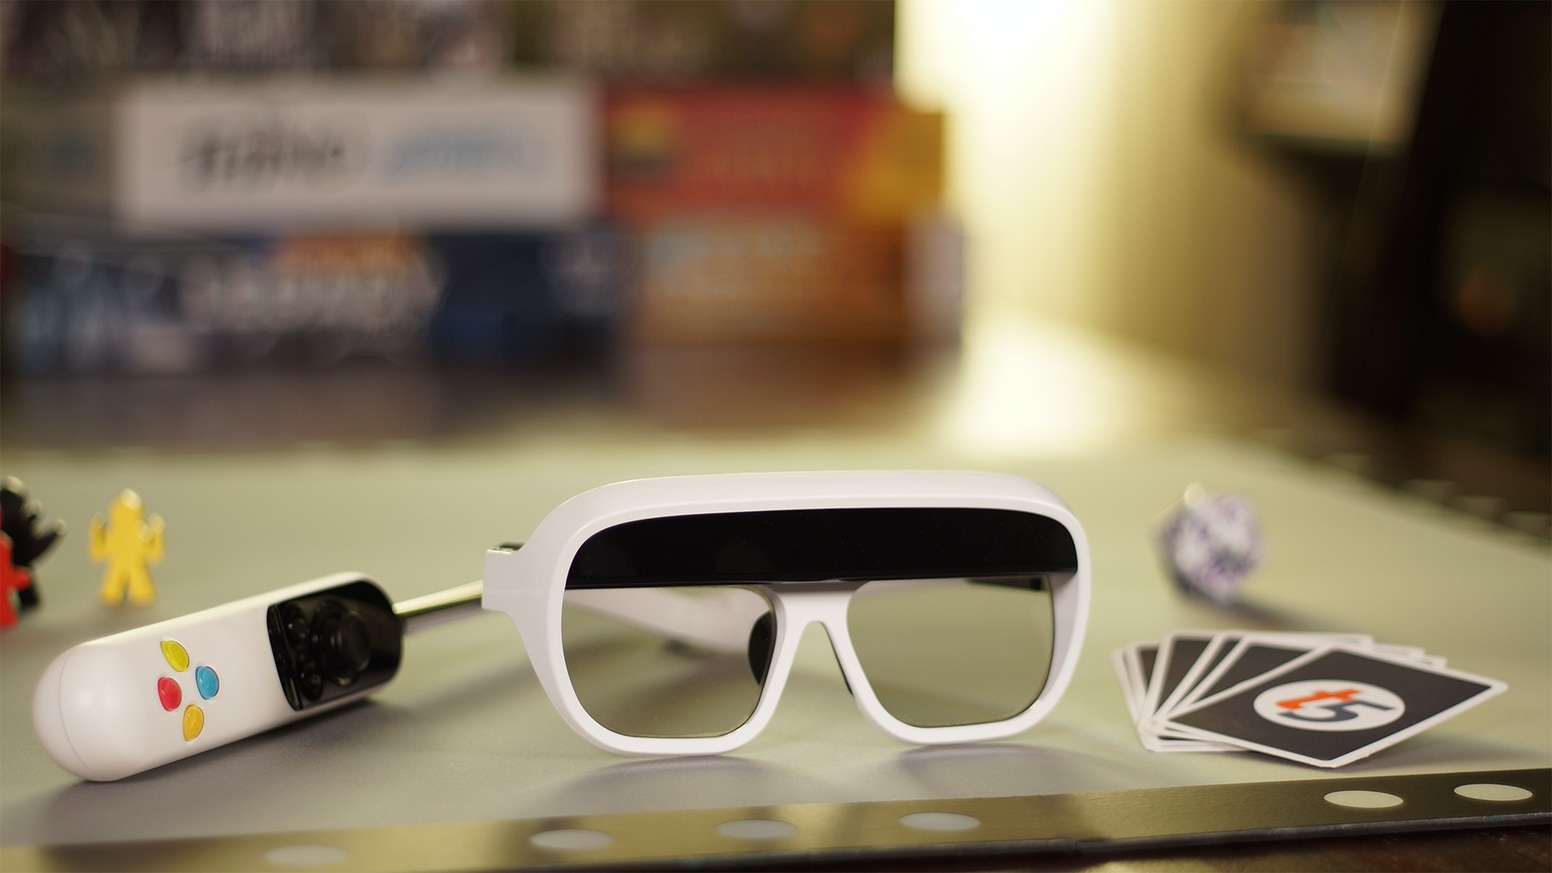 Augmented Reality glasses that open up a whole new holographic game space.